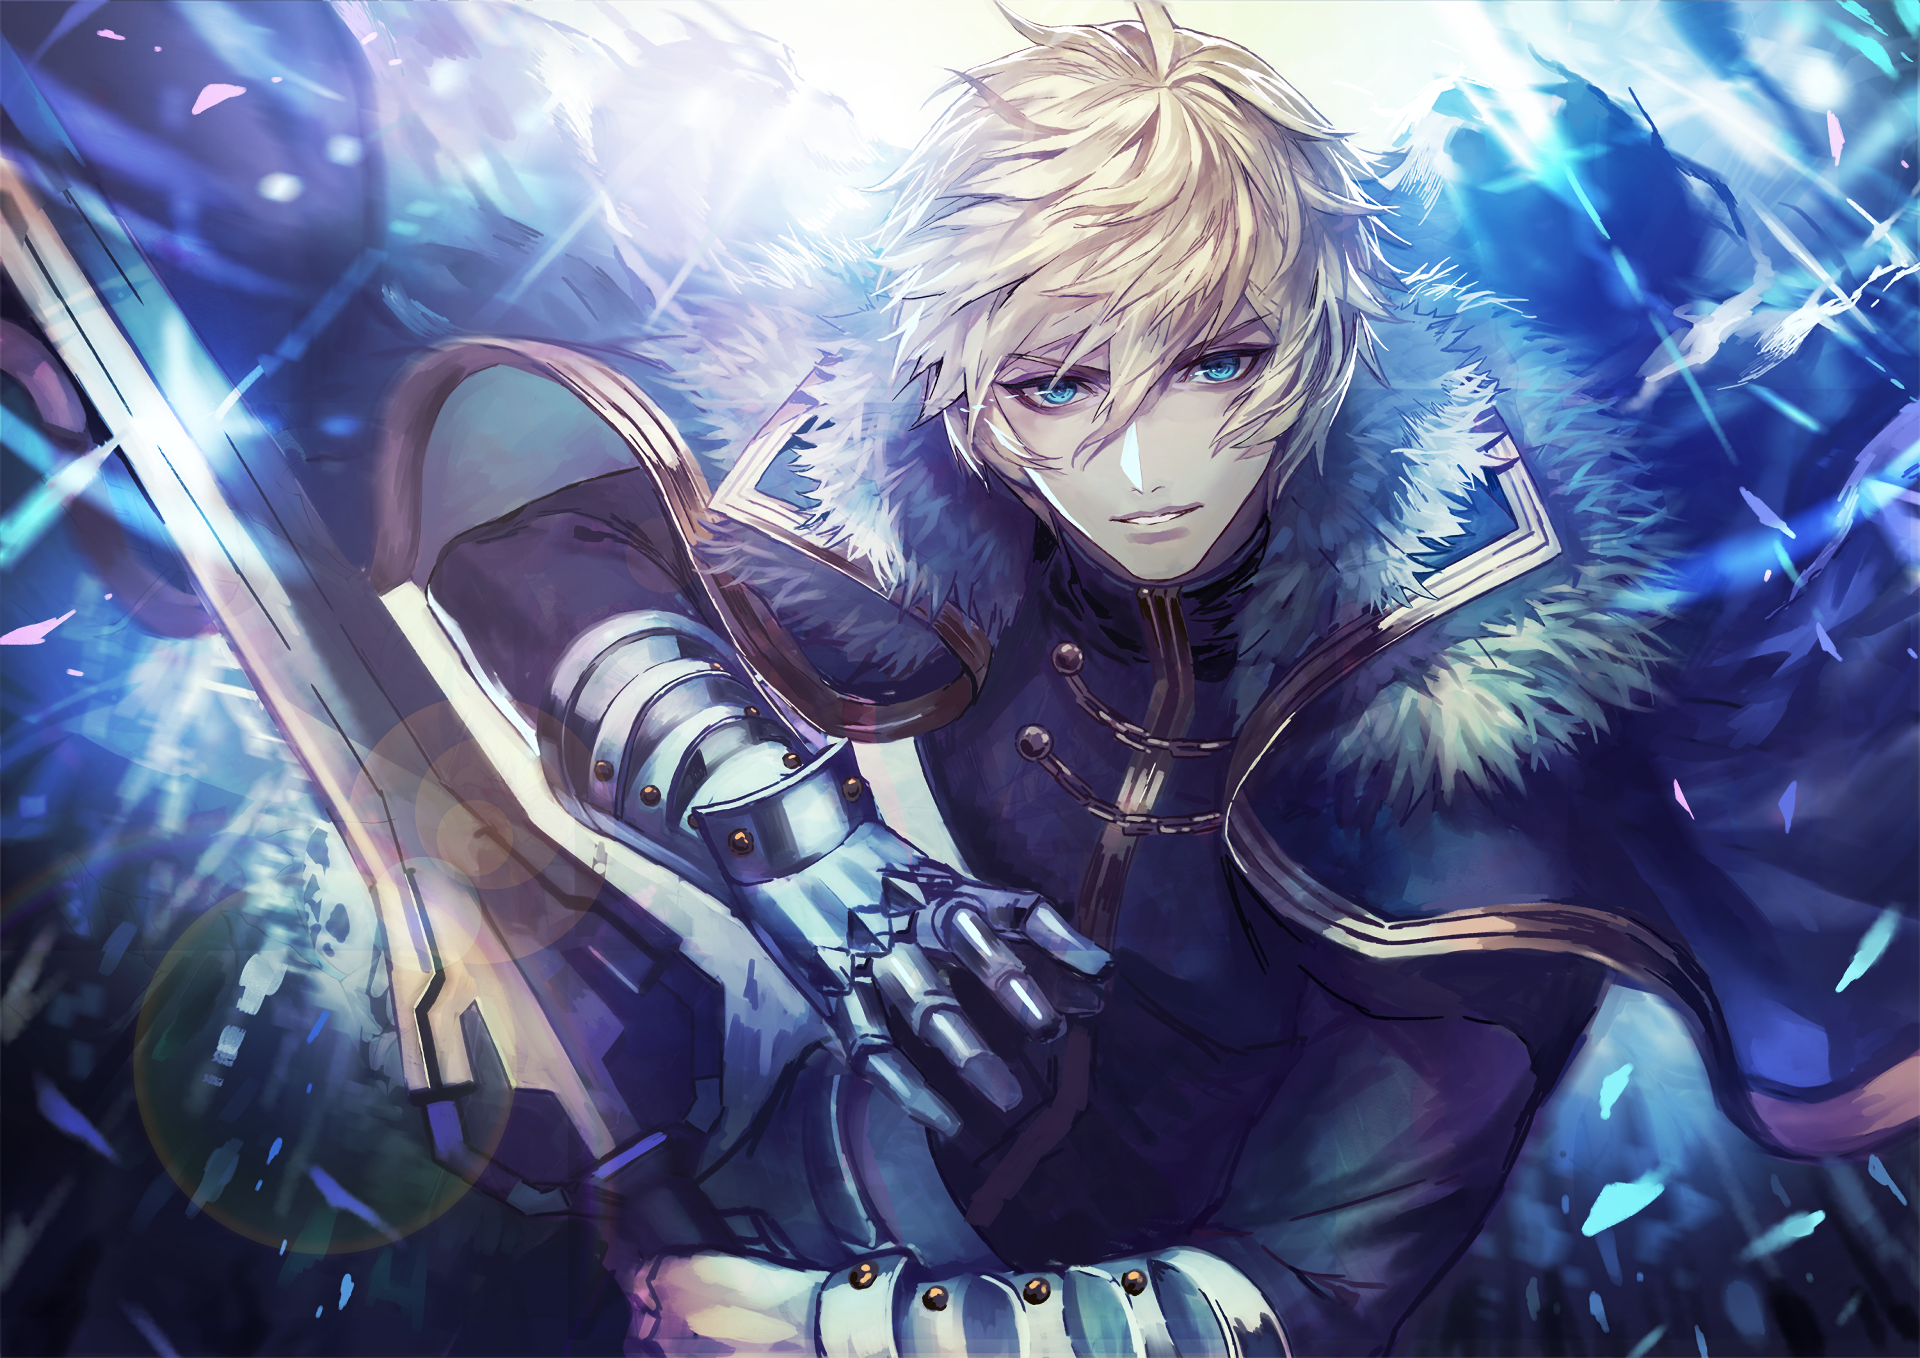 Anime Fate/Grand Order Gawain (Fate/Grand Order) Wallpaper